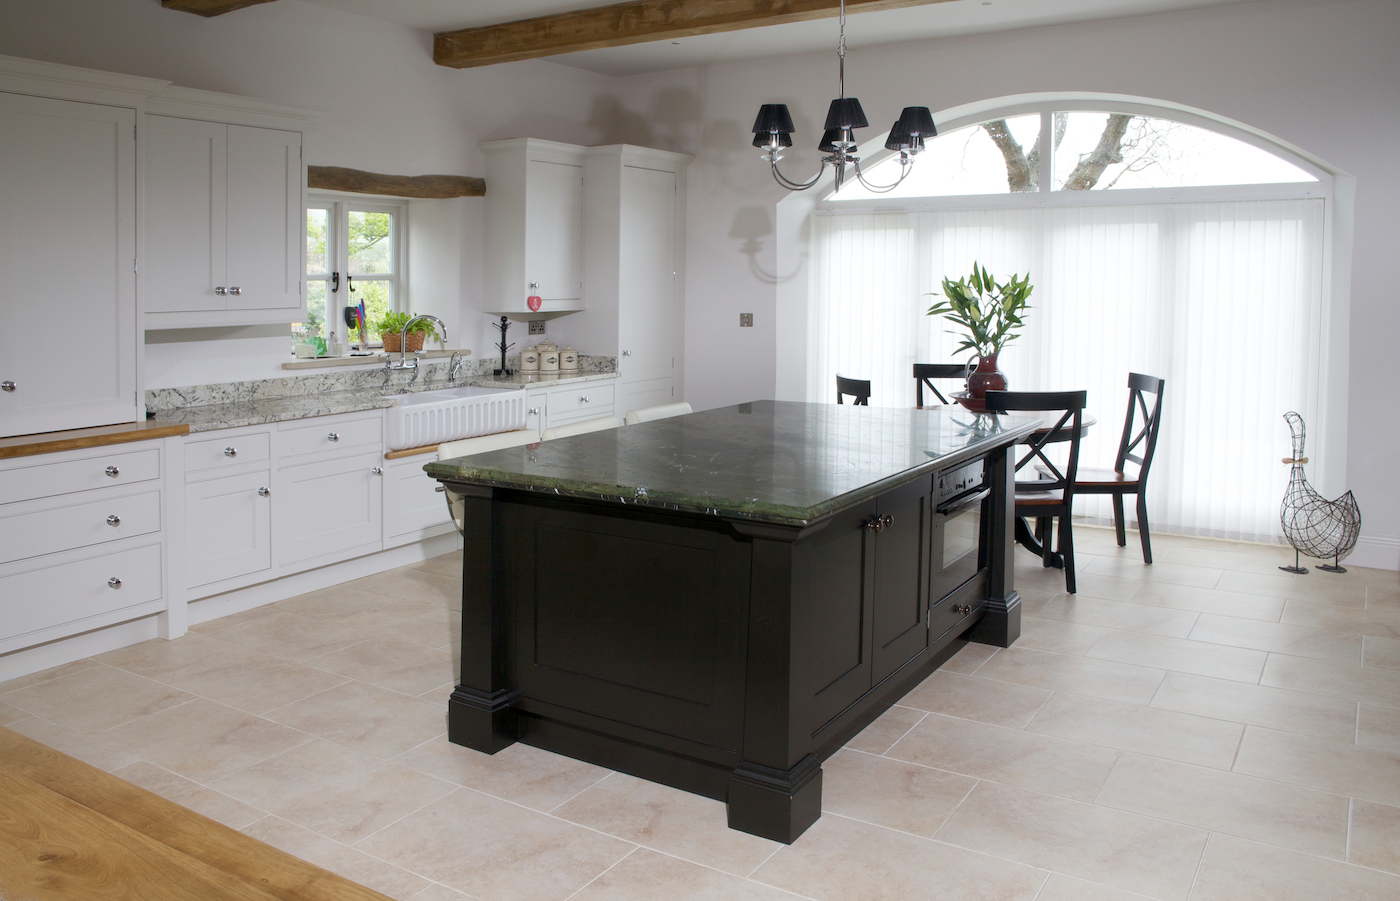 Grey Pewter Kitchen - Pott Shrigley, Cheshire